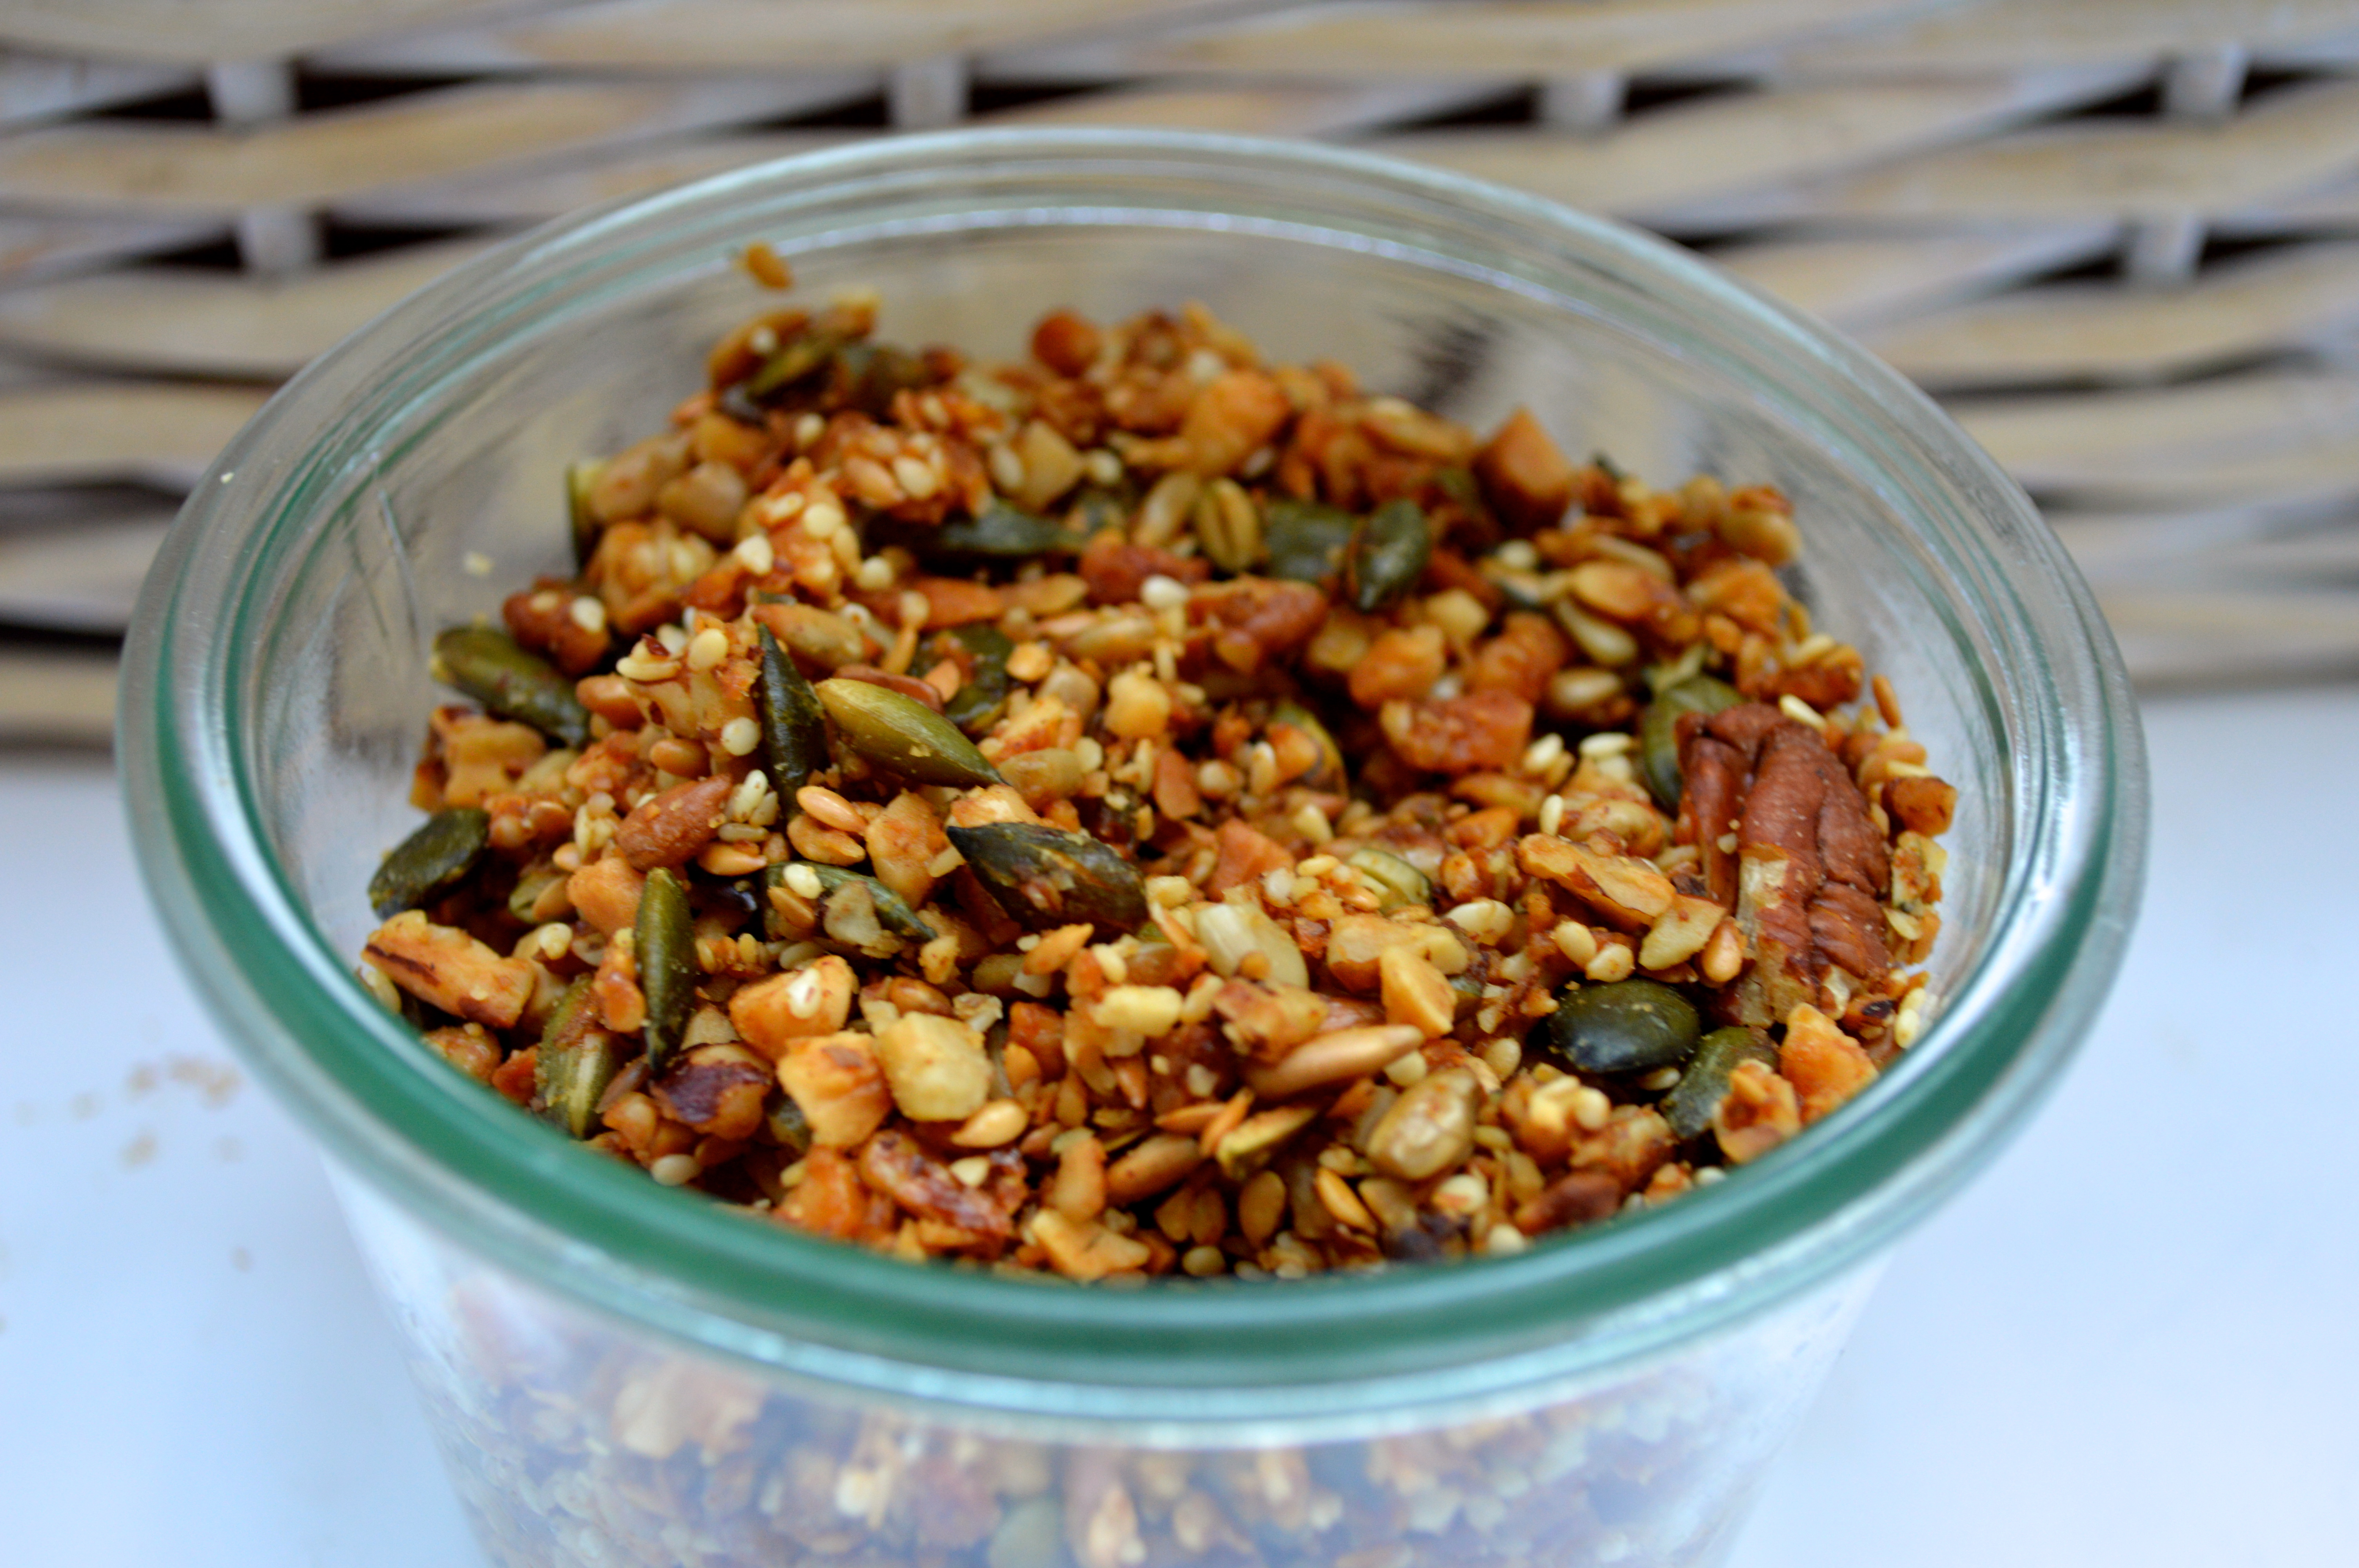 Simple homemade granola